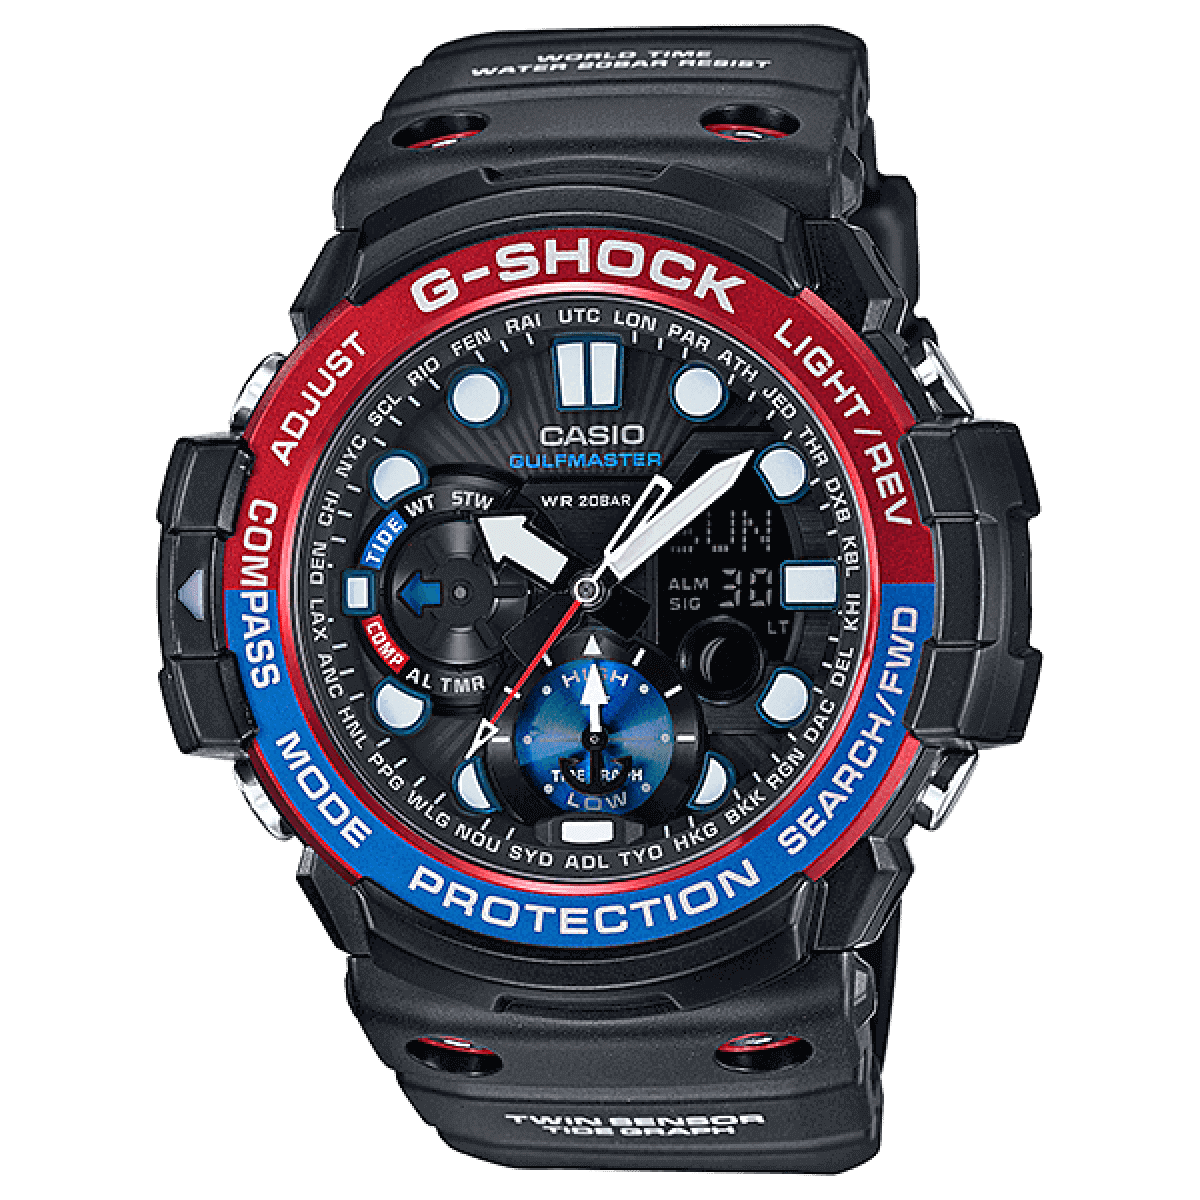 a5b34a73ccf Limited Edition. Limited Edition 92 watches. G-Shock Newsletter